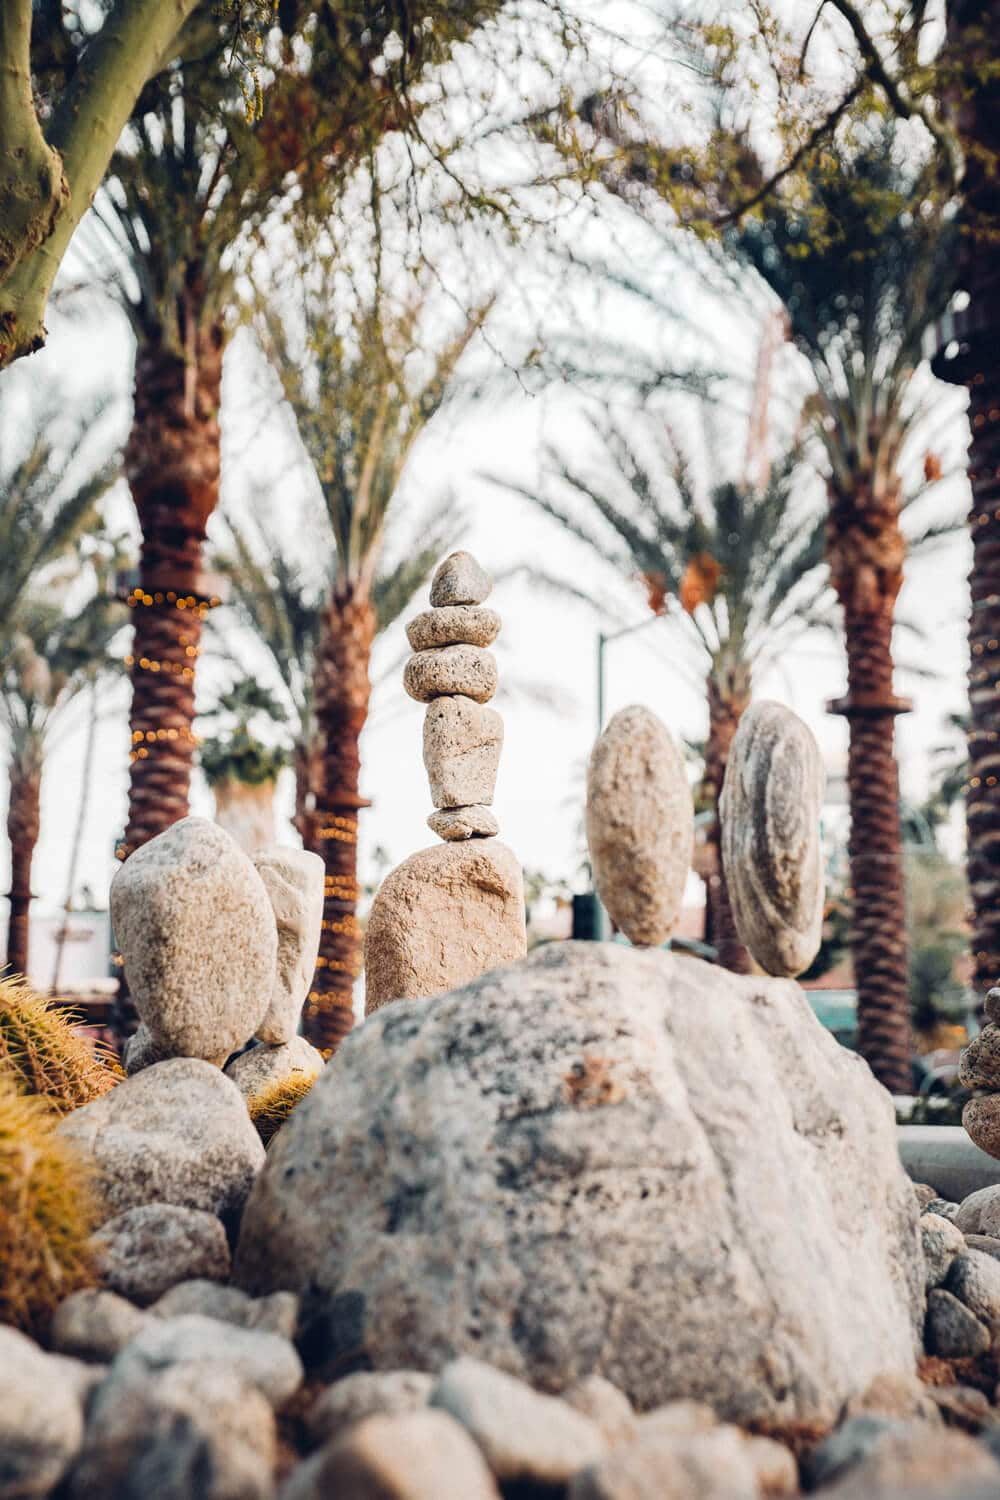 From the best local shops to a $4.95 bottomless champagne brunch, and the city's most instagrammable locations, here are 15 local gems you must visit during your next Palm Springs getaway.